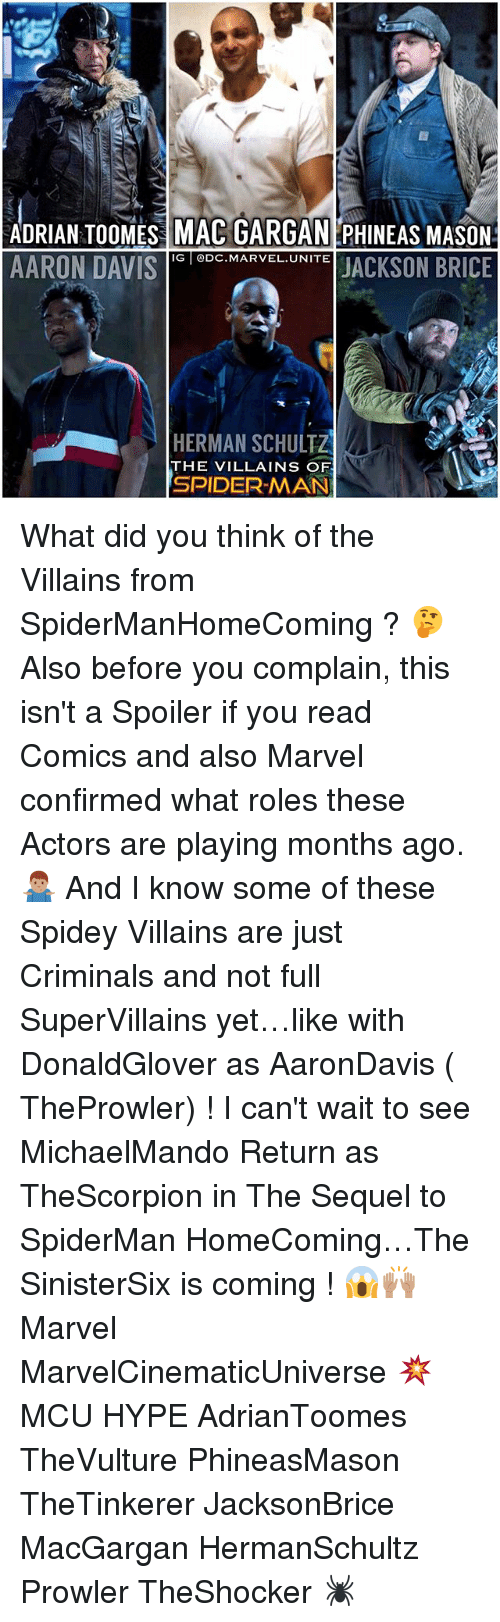 Hype, Memes, and Spider: ADRIAN TOOMES MAC GARGAN PHINEAS MASON  AARON DAVIScMARVELUNITE JACKSON BRICE  IG DC.MARVEL.UNITE  HERMAN SCHULTZ  THE VILLAINS OF  SPIDER-MAN What did you think of the Villains from SpiderManHomeComing ? 🤔 Also before you complain, this isn't a Spoiler if you read Comics and also Marvel confirmed what roles these Actors are playing months ago. 🤷🏽‍♂️ And I know some of these Spidey Villains are just Criminals and not full SuperVillains yet…like with DonaldGlover as AaronDavis ( TheProwler) ! I can't wait to see MichaelMando Return as TheScorpion in The Sequel to SpiderMan HomeComing…The SinisterSix is coming ! 😱🙌🏽 Marvel MarvelCinematicUniverse 💥 MCU HYPE AdrianToomes TheVulture PhineasMason TheTinkerer JacksonBrice MacGargan HermanSchultz Prowler TheShocker 🕷